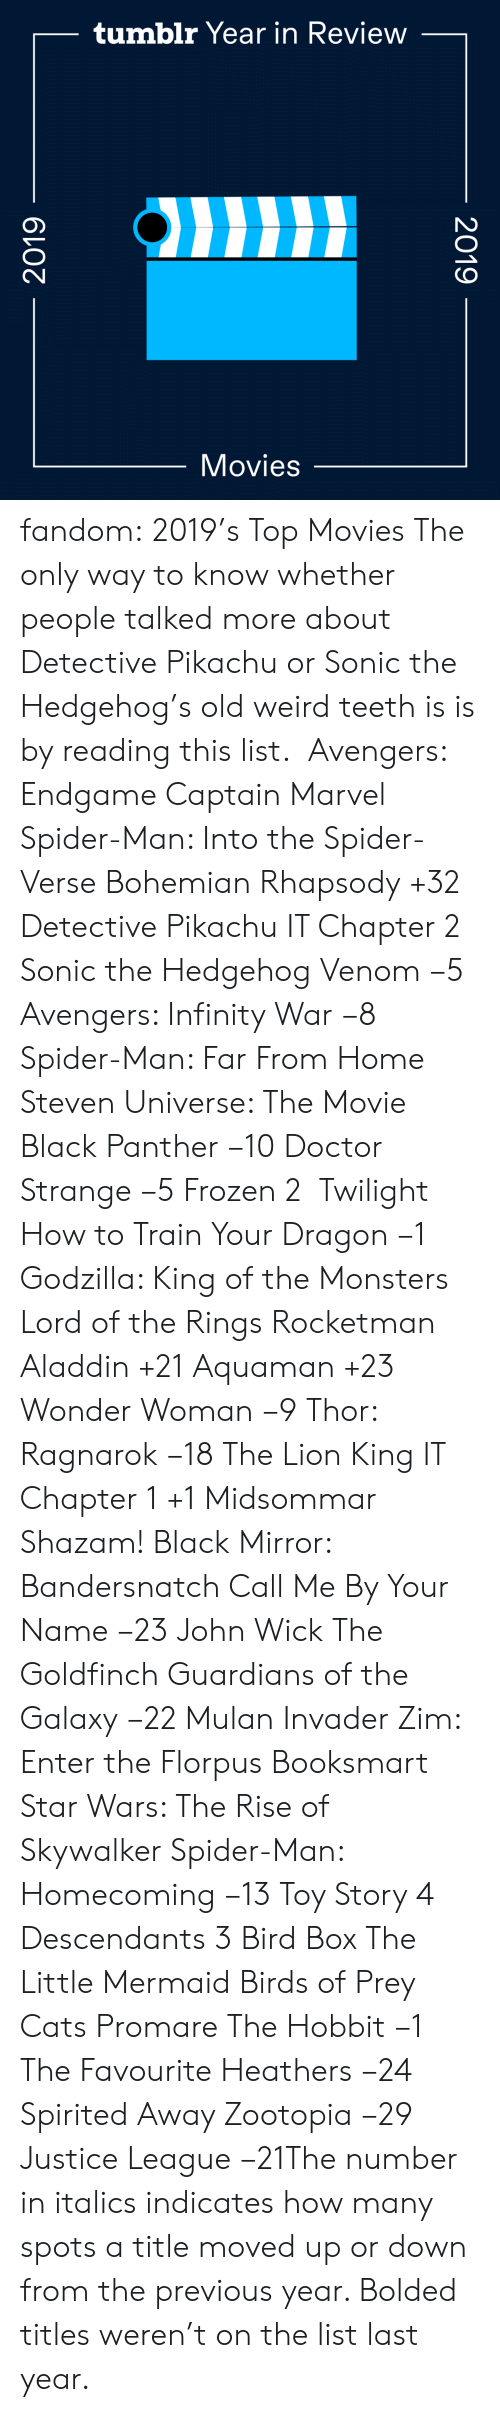 Toy Story: tumblr Year in Review  Movies  2019  2019 fandom:  2019's Top Movies  The only way to know whether people talked more about Detective Pikachu or Sonic the Hedgehog's old weird teeth is is by reading this list.   Avengers: Endgame  Captain Marvel  Spider-Man: Into the Spider-Verse  Bohemian Rhapsody +32  Detective Pikachu  IT Chapter 2  Sonic the Hedgehog  Venom −5  Avengers: Infinity War −8  Spider-Man: Far From Home  Steven Universe: The Movie  Black Panther −10  Doctor Strange −5  Frozen 2   Twilight  How to Train Your Dragon −1  Godzilla: King of the Monsters  Lord of the Rings  Rocketman  Aladdin +21  Aquaman +23  Wonder Woman −9  Thor: Ragnarok −18  The Lion King  IT Chapter 1 +1  Midsommar  Shazam!  Black Mirror: Bandersnatch  Call Me By Your Name −23  John Wick  The Goldfinch  Guardians of the Galaxy −22  Mulan  Invader Zim: Enter the Florpus  Booksmart  Star Wars: The Rise of Skywalker  Spider-Man: Homecoming −13  Toy Story 4  Descendants 3  Bird Box  The Little Mermaid  Birds of Prey  Cats  Promare  The Hobbit −1  The Favourite  Heathers −24  Spirited Away  Zootopia −29 Justice League −21The number in italics indicates how many spots a title moved up or down from the previous year. Bolded titles weren't on the list last year.